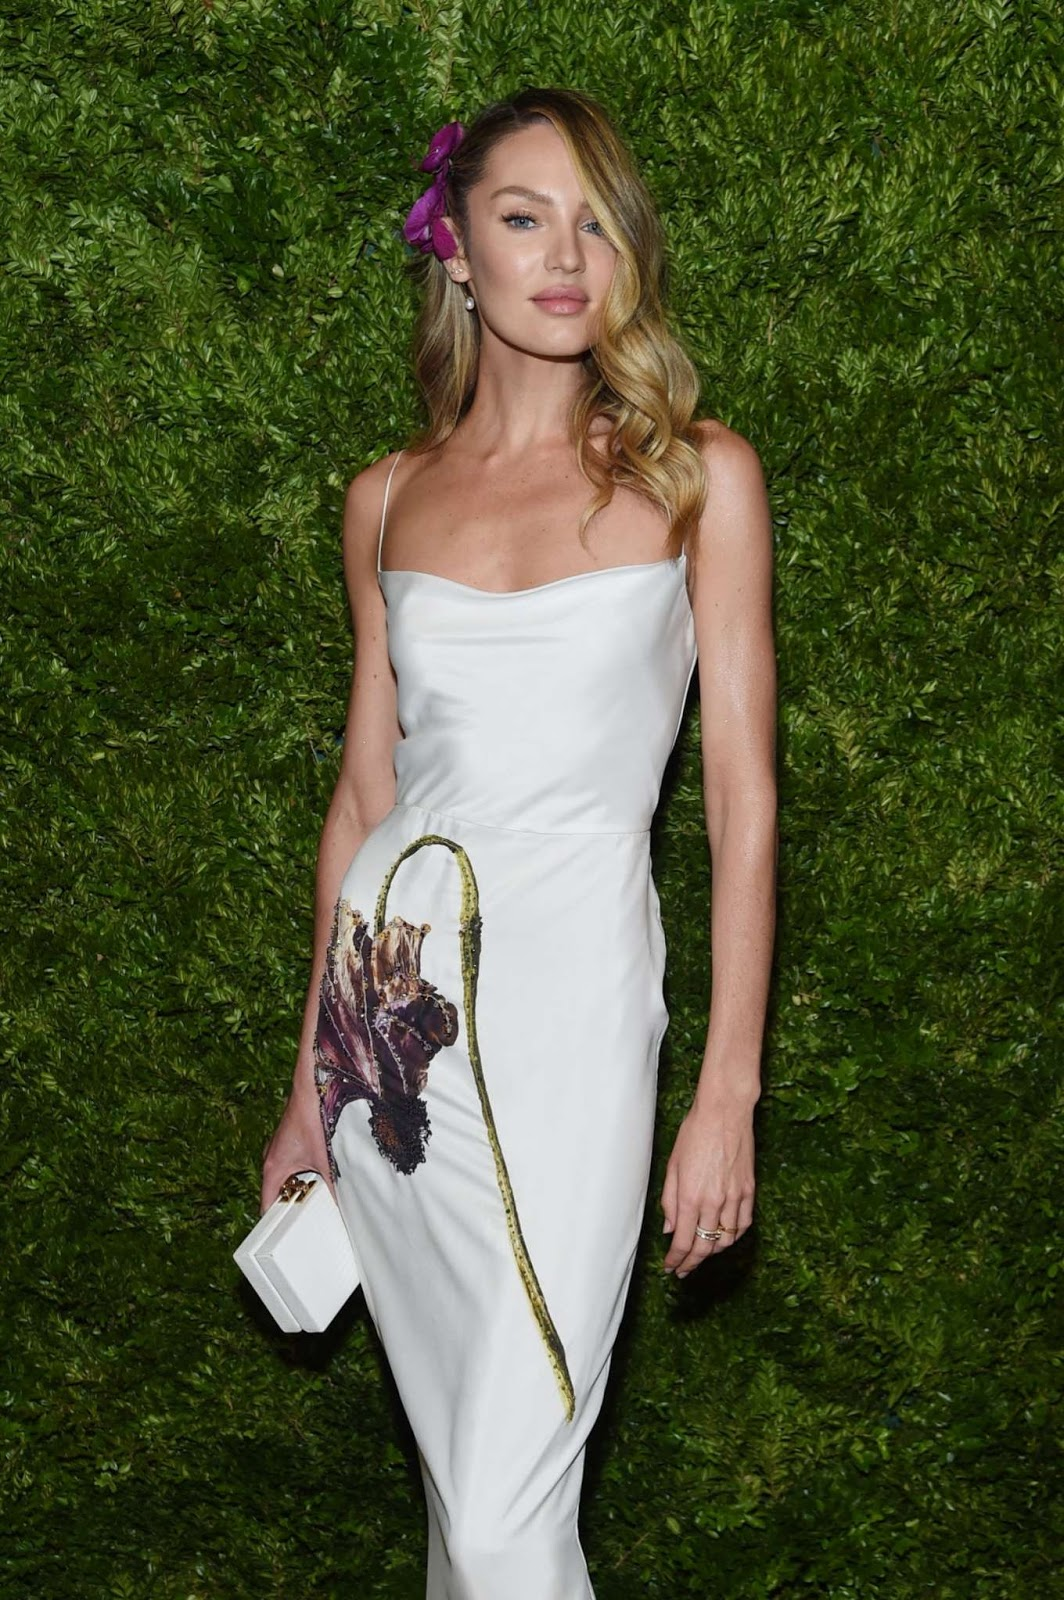 Candice Swanepoel is radiant in floral gown as she attends the CFDA/Vogue Fashion Fund Awards in New York